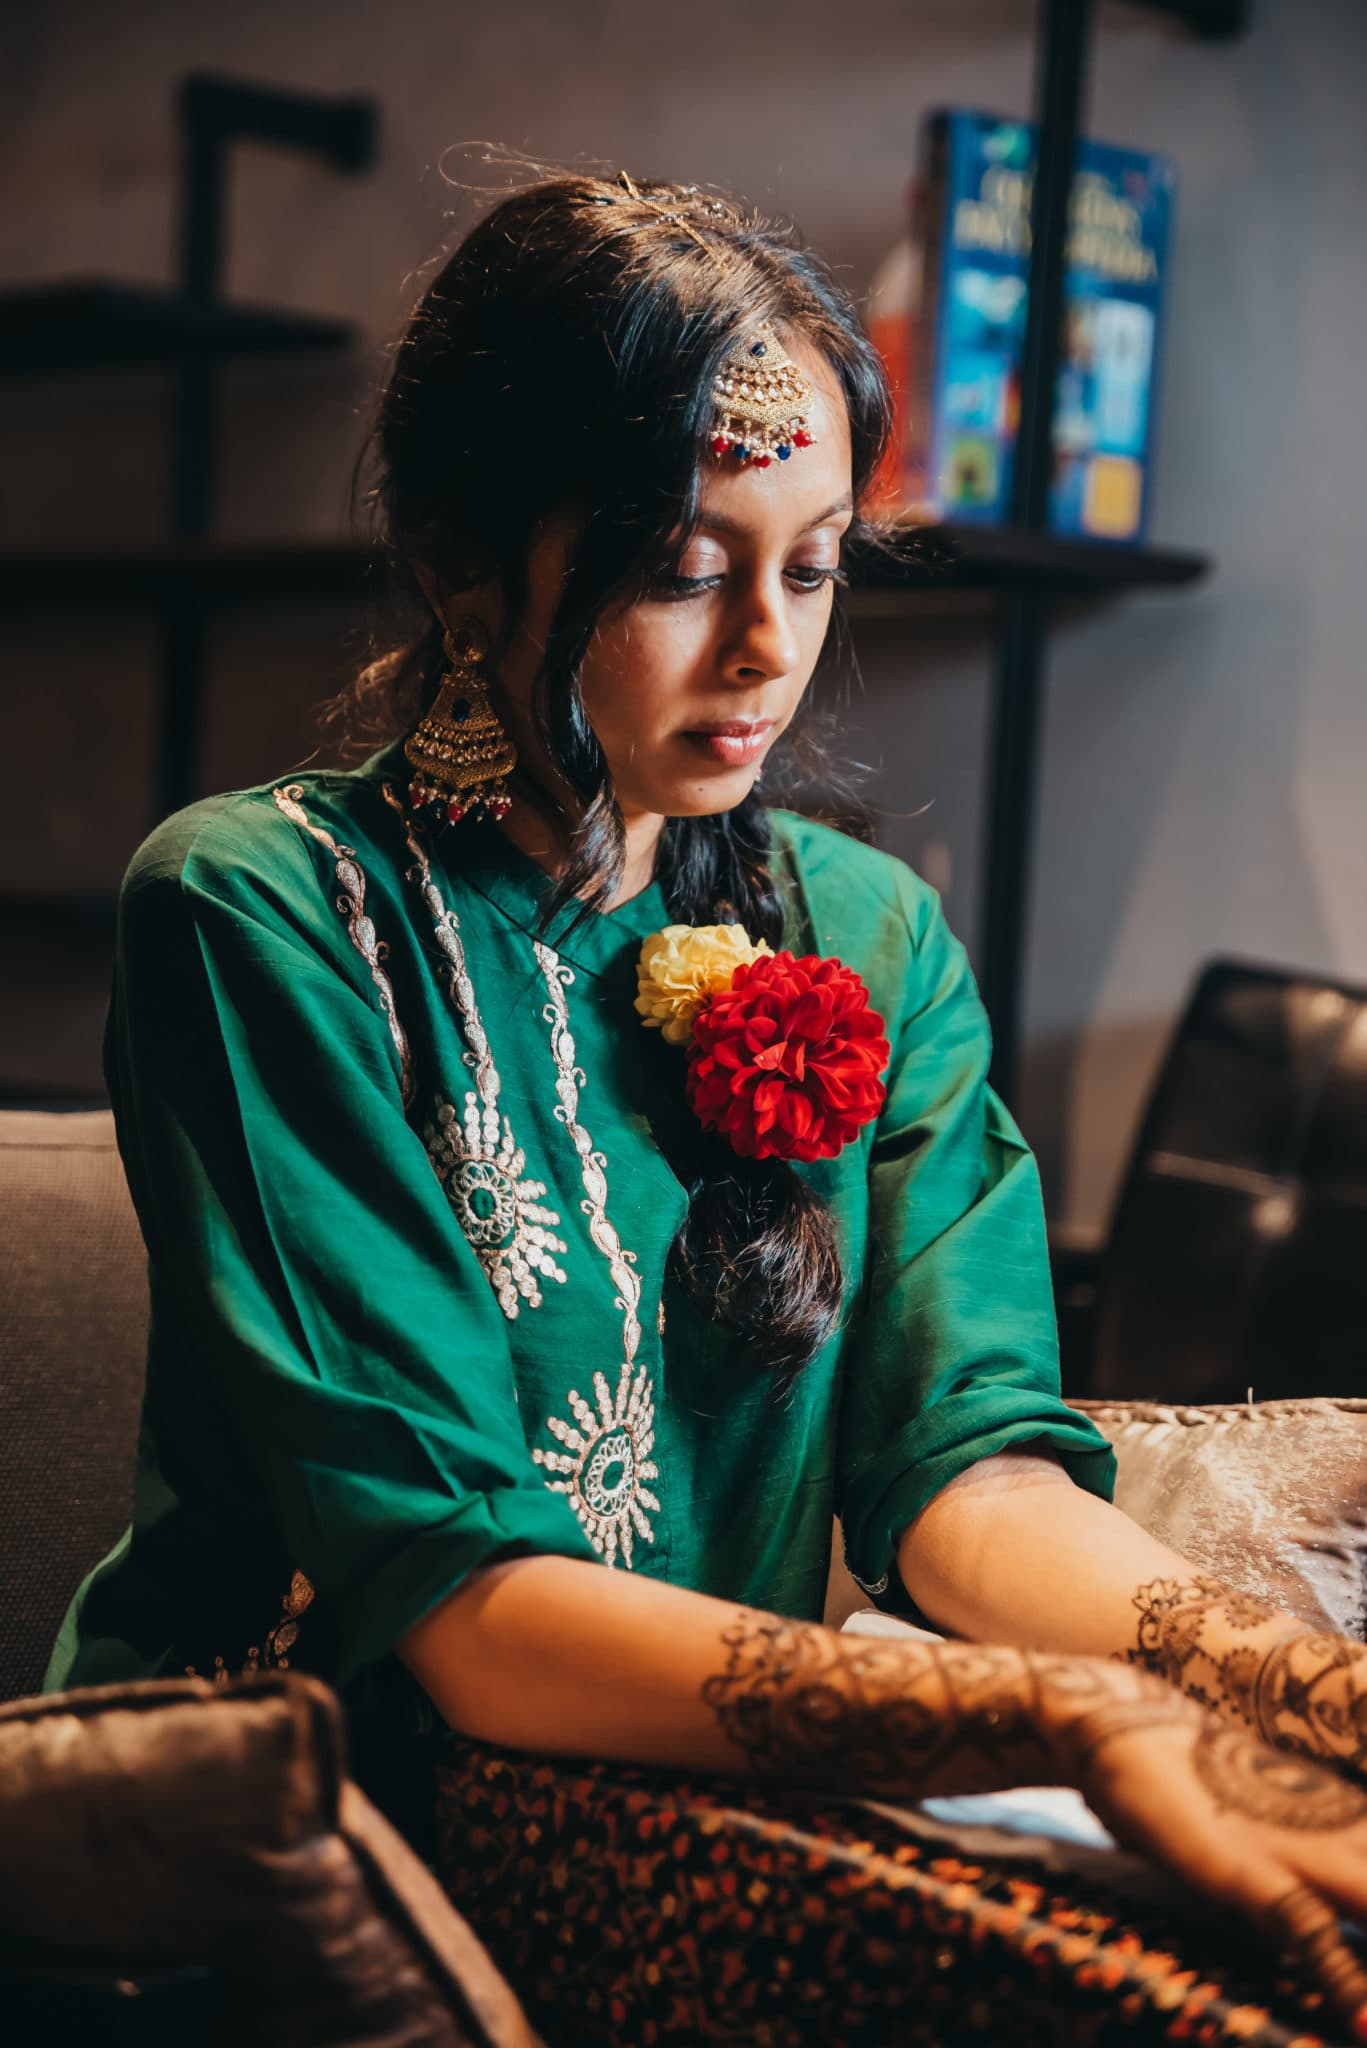 Mehndi ceremony in an Indian wedding ceremony , Barnet, Potters Bar London